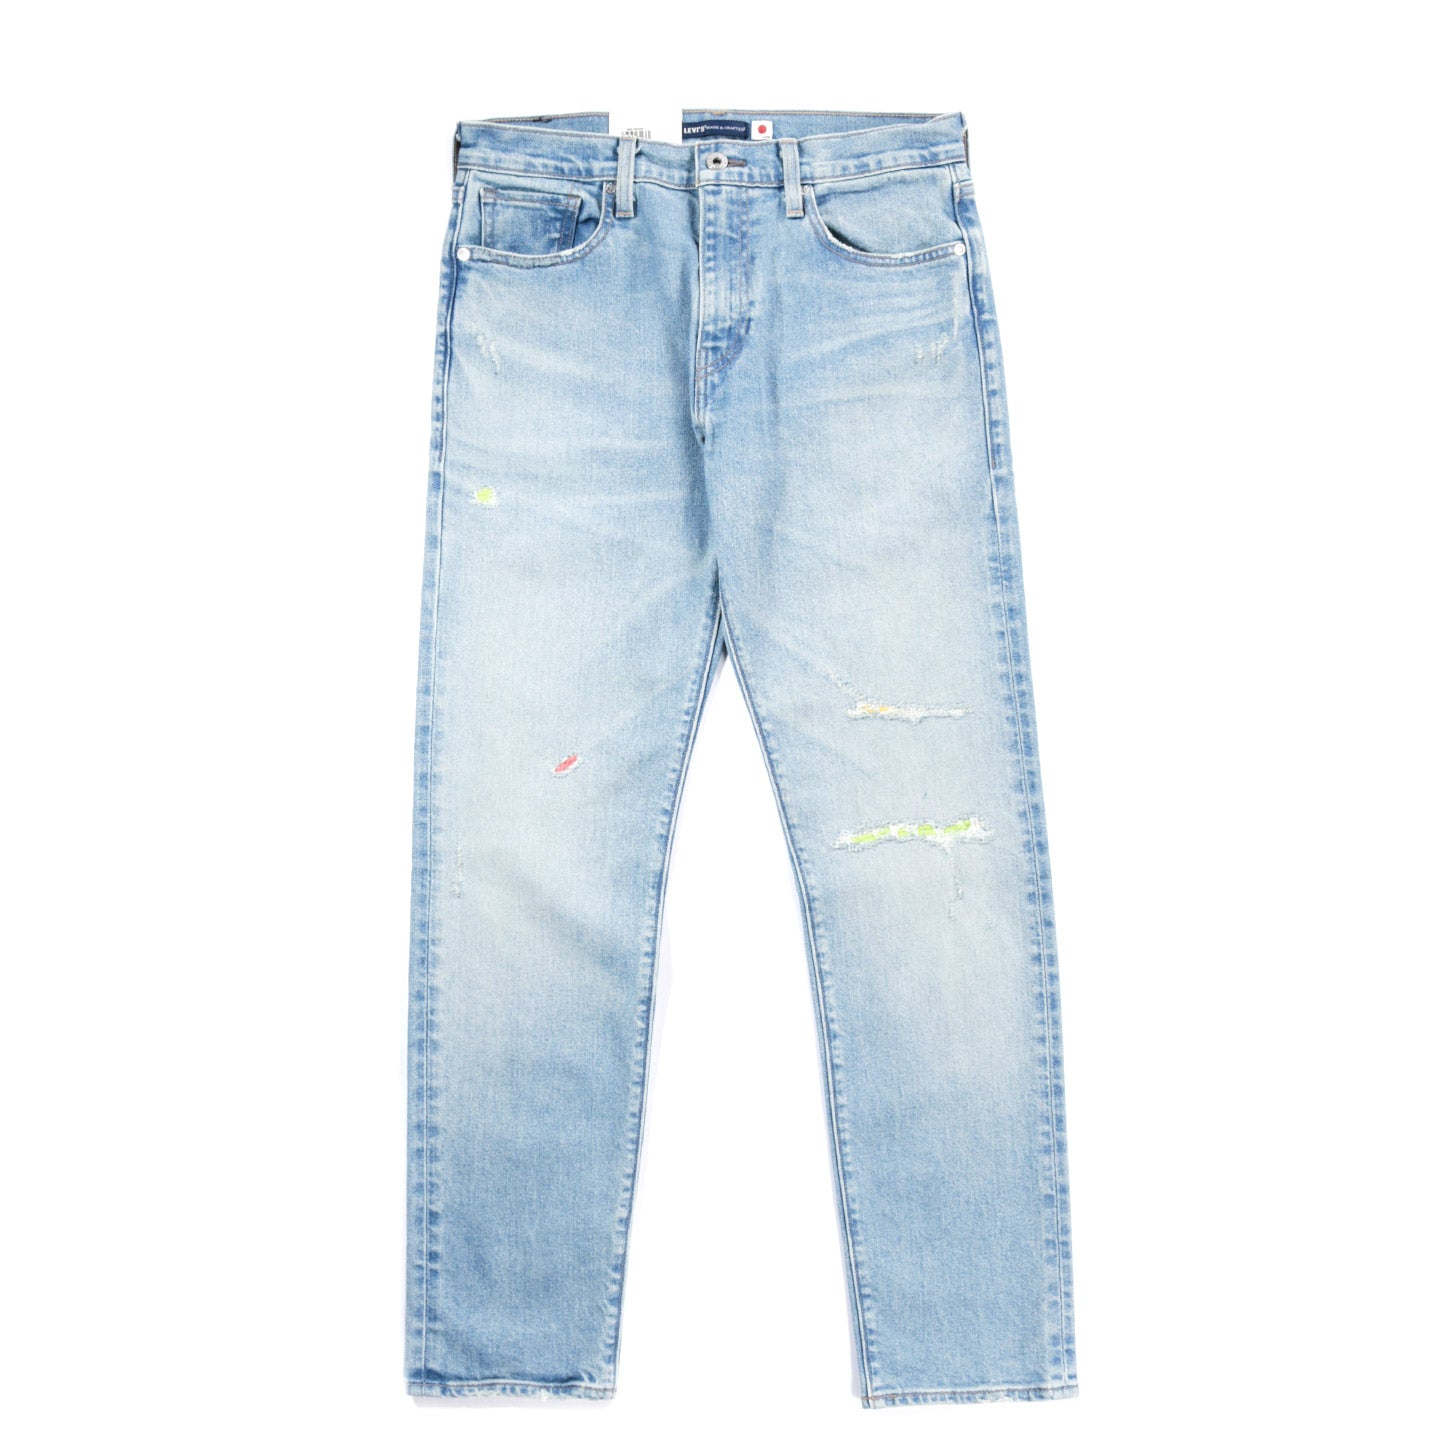 LEVI'S MADE & CRAFTED 502 MIJ NITCHIBOTSU